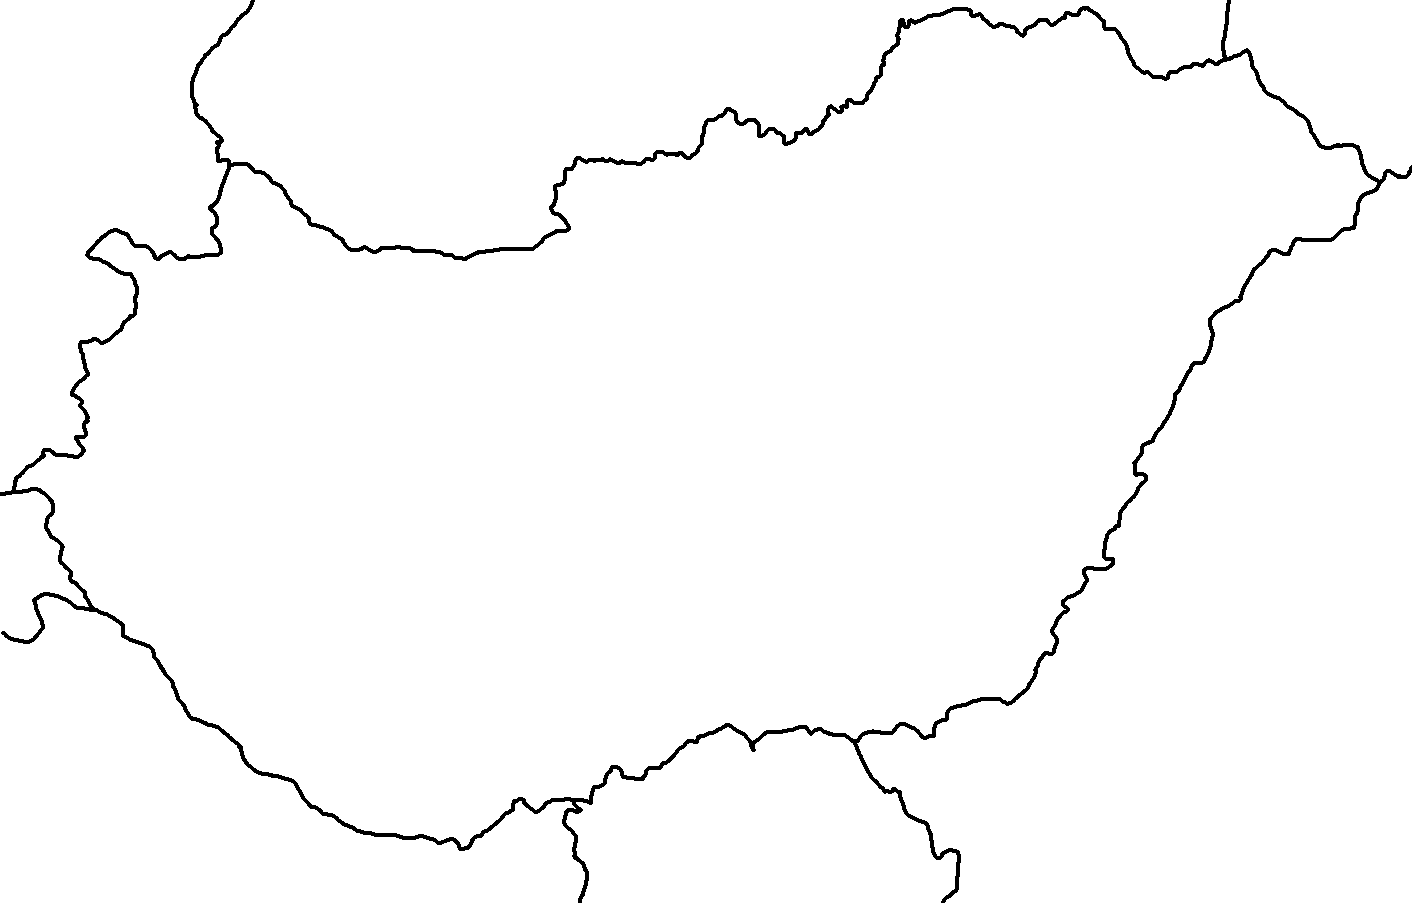 Blank map of Hungary.png - Hungary PNG